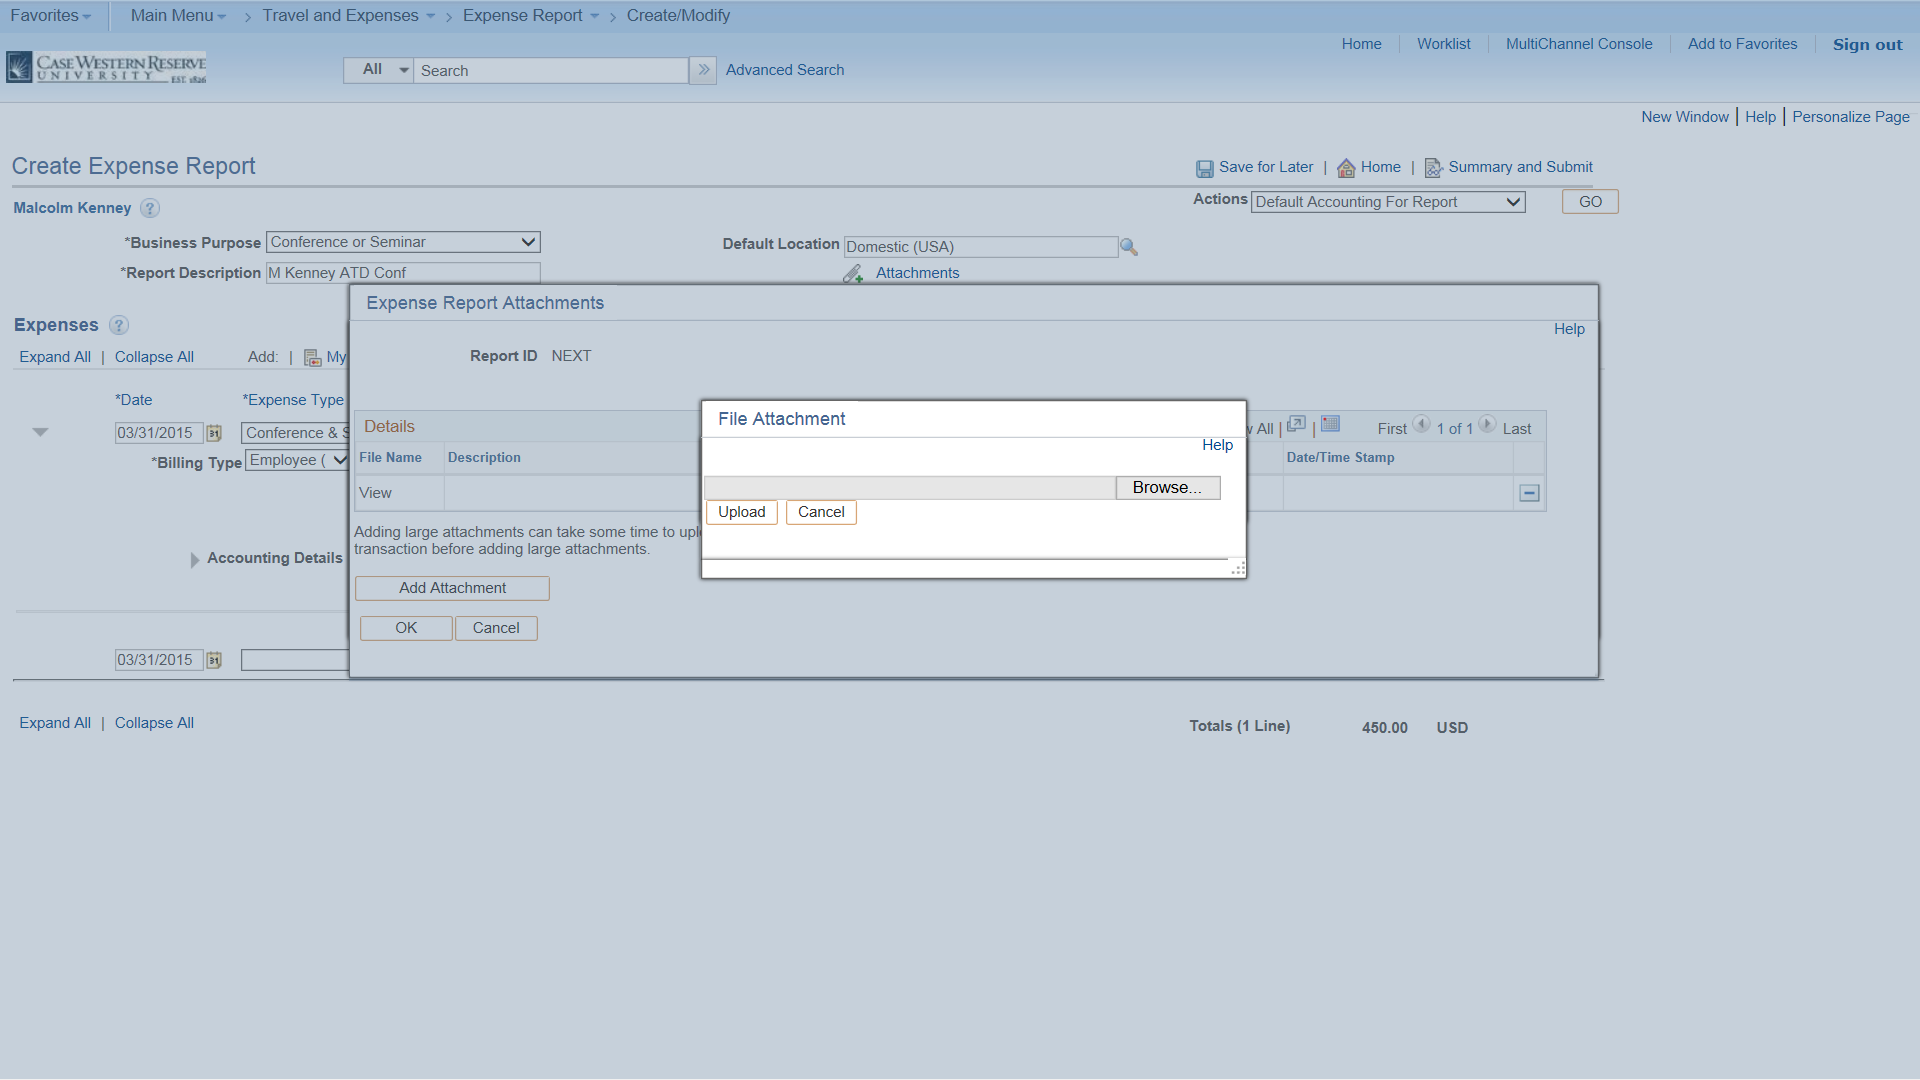 PeopleSoft Financials screen shot displaying the Add Attachment box to upload a file